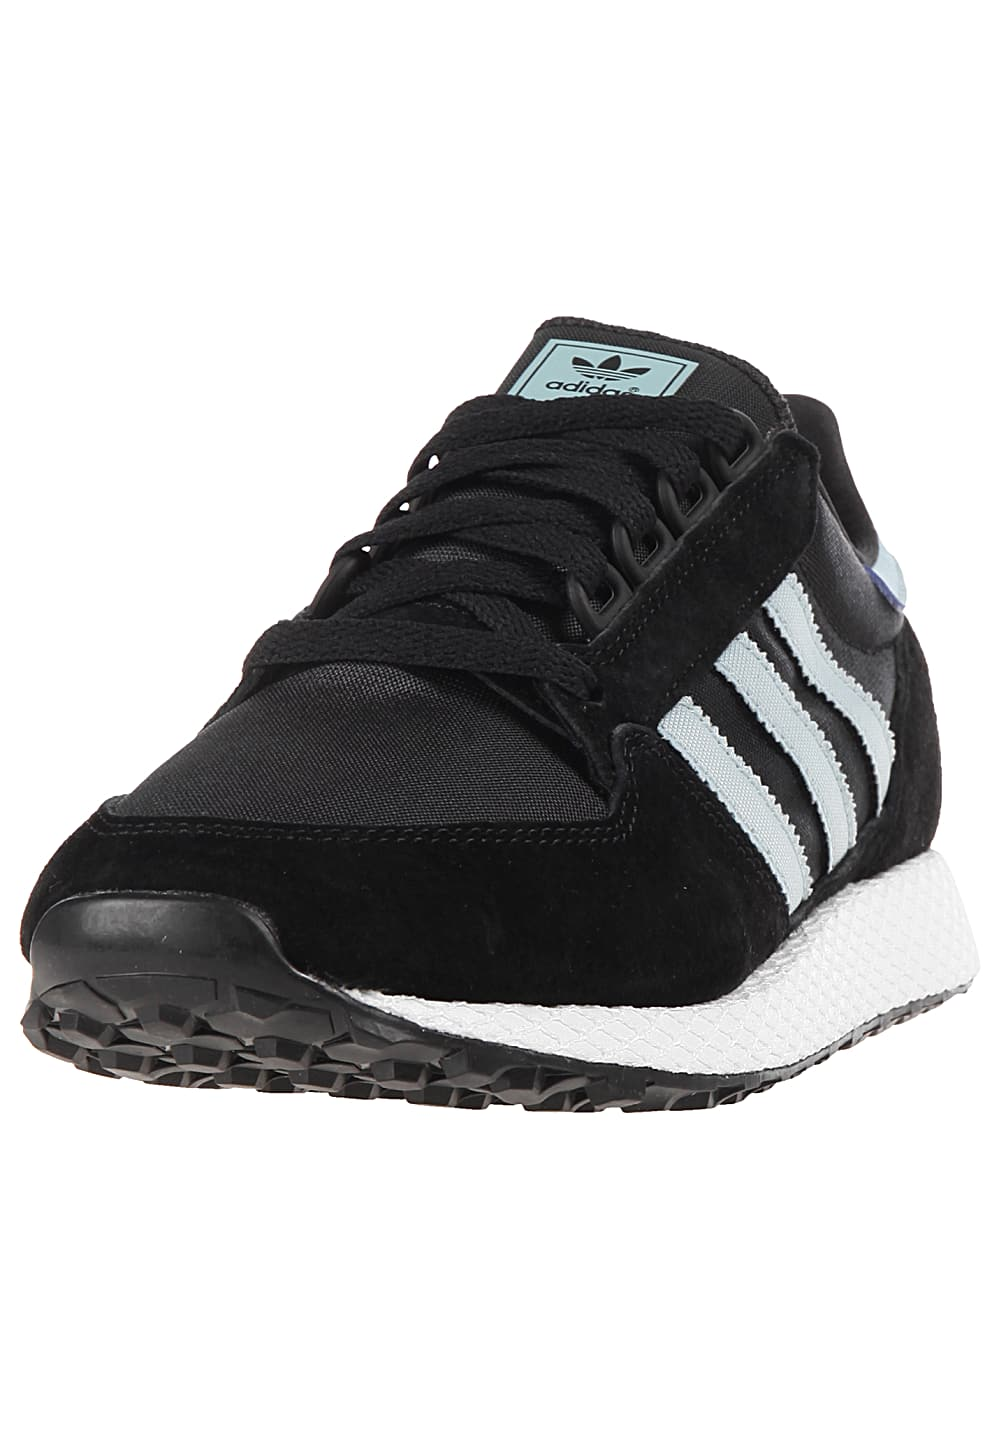 ADIDAS ORIGINALS Forest Grove Sneakers for Women Black